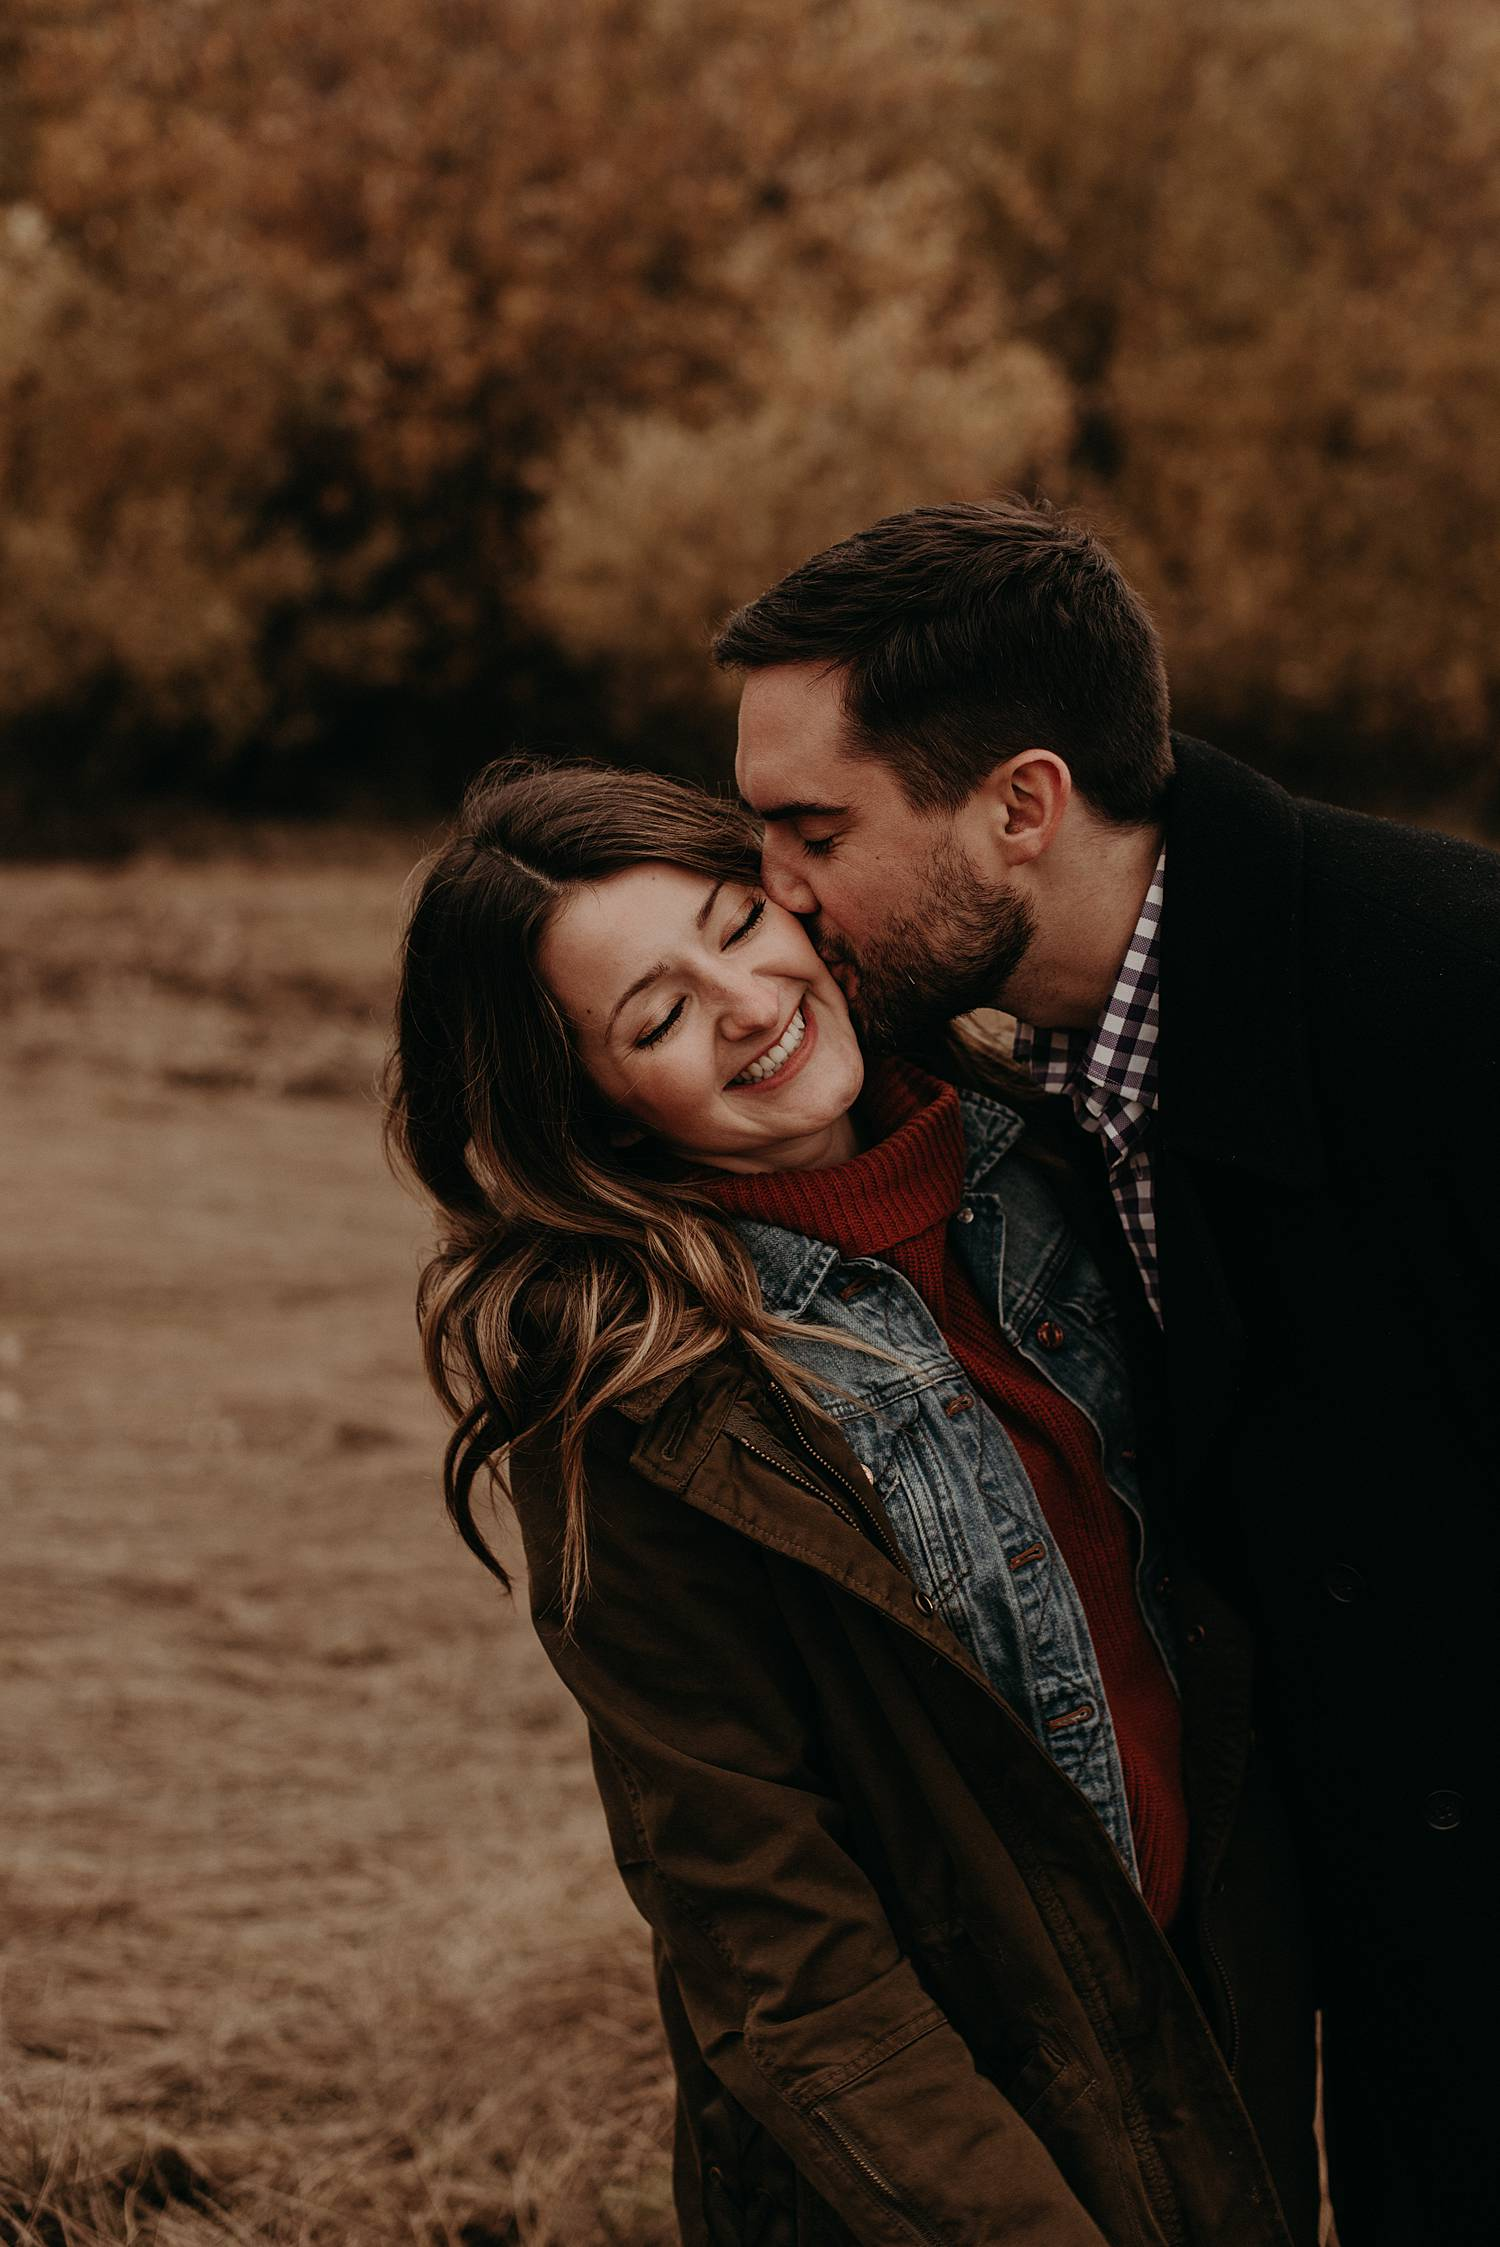 vancouver_lake_engagement_session_jake_and_jessica_1026.jpg